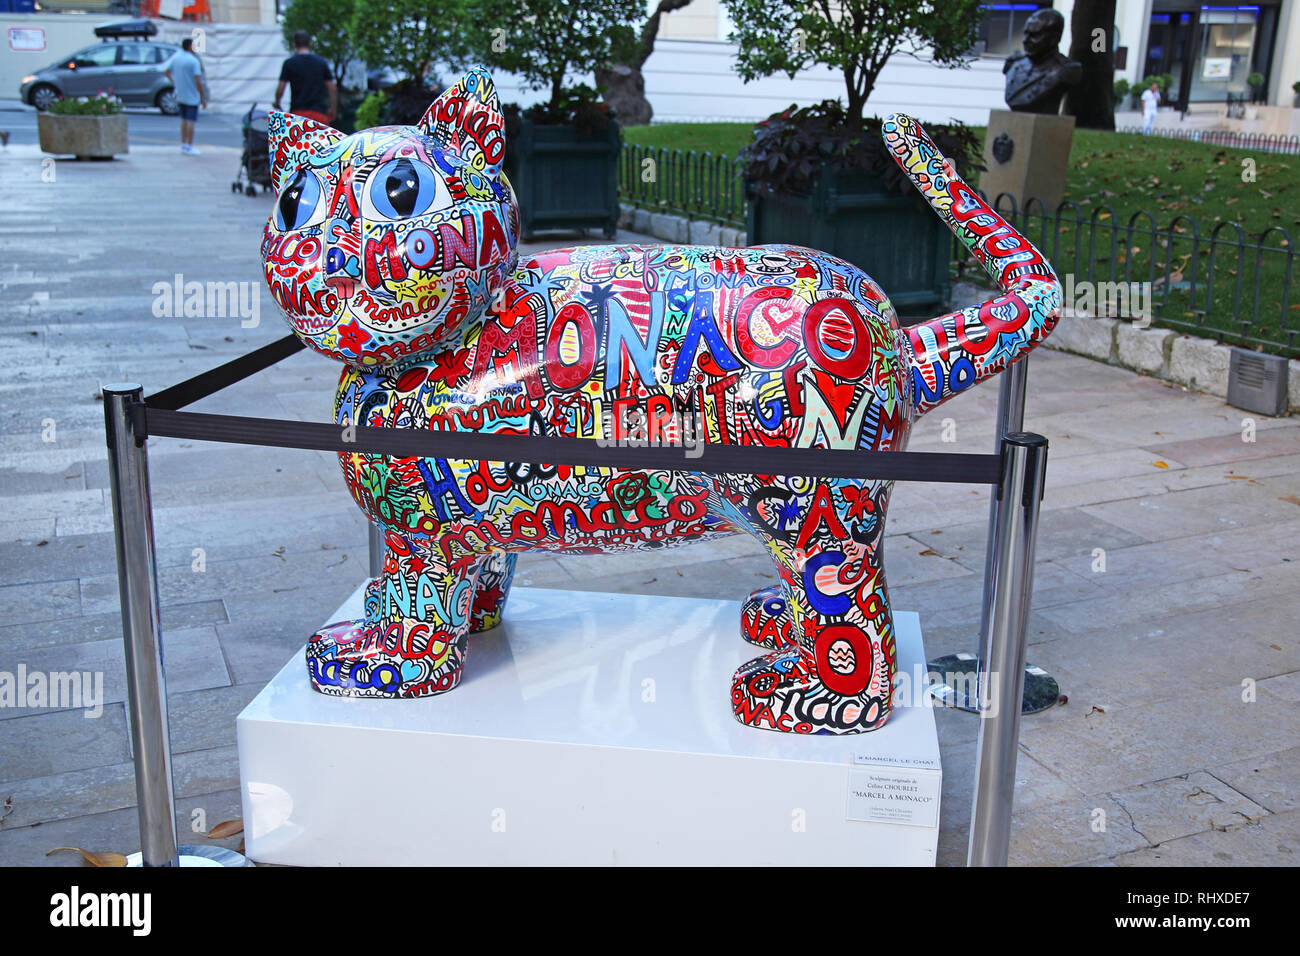 Sculpture of 'Marcel le chat' by Celine Chourlet displayed on the streets of Monaco, France - Stock Image